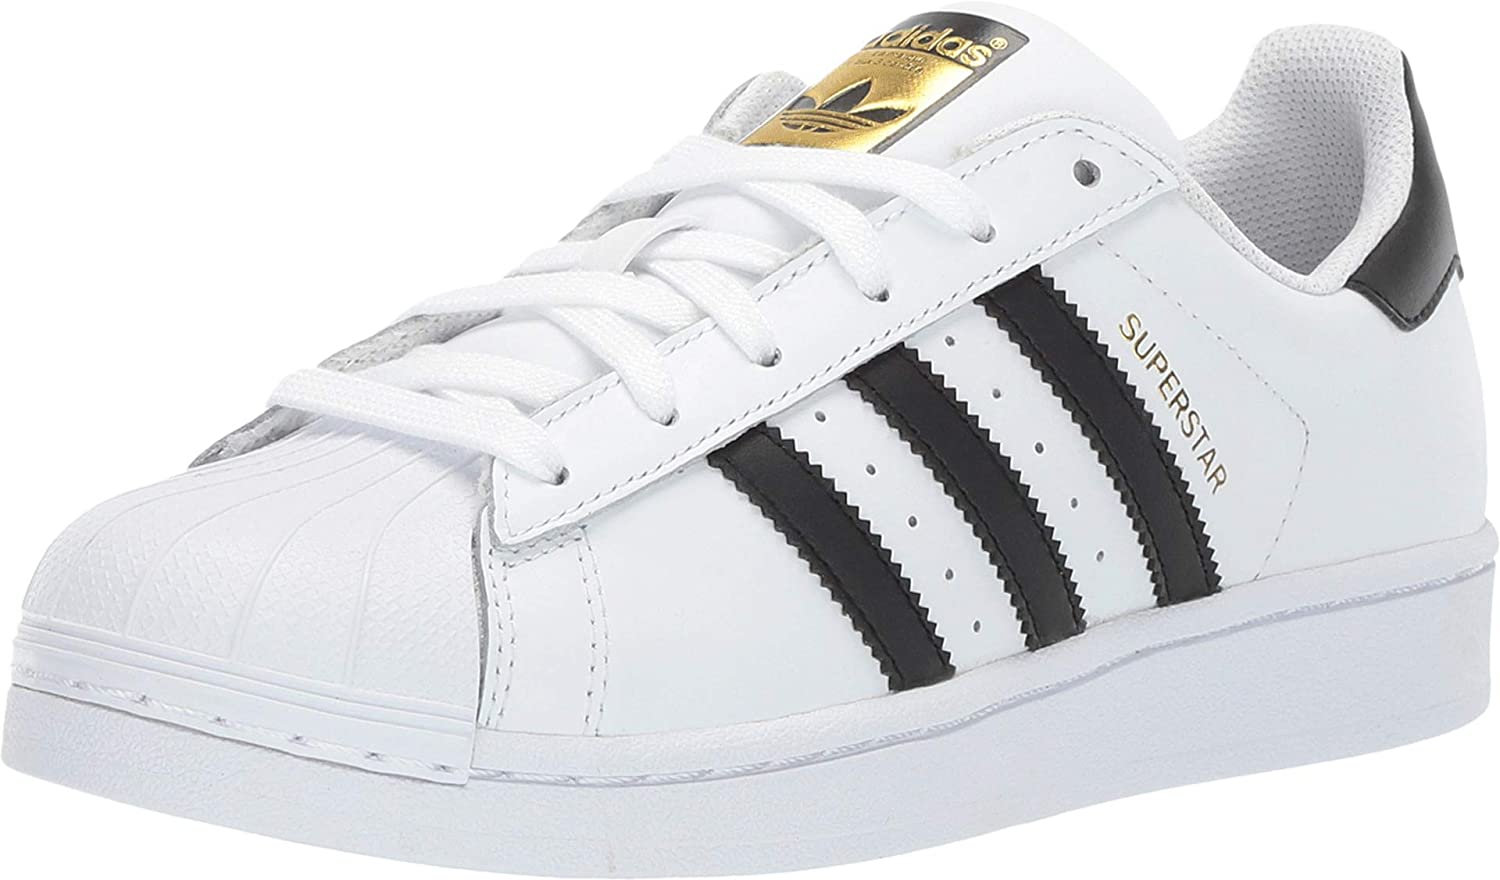 adidas Superstar Shoes Kids', White, Size 4